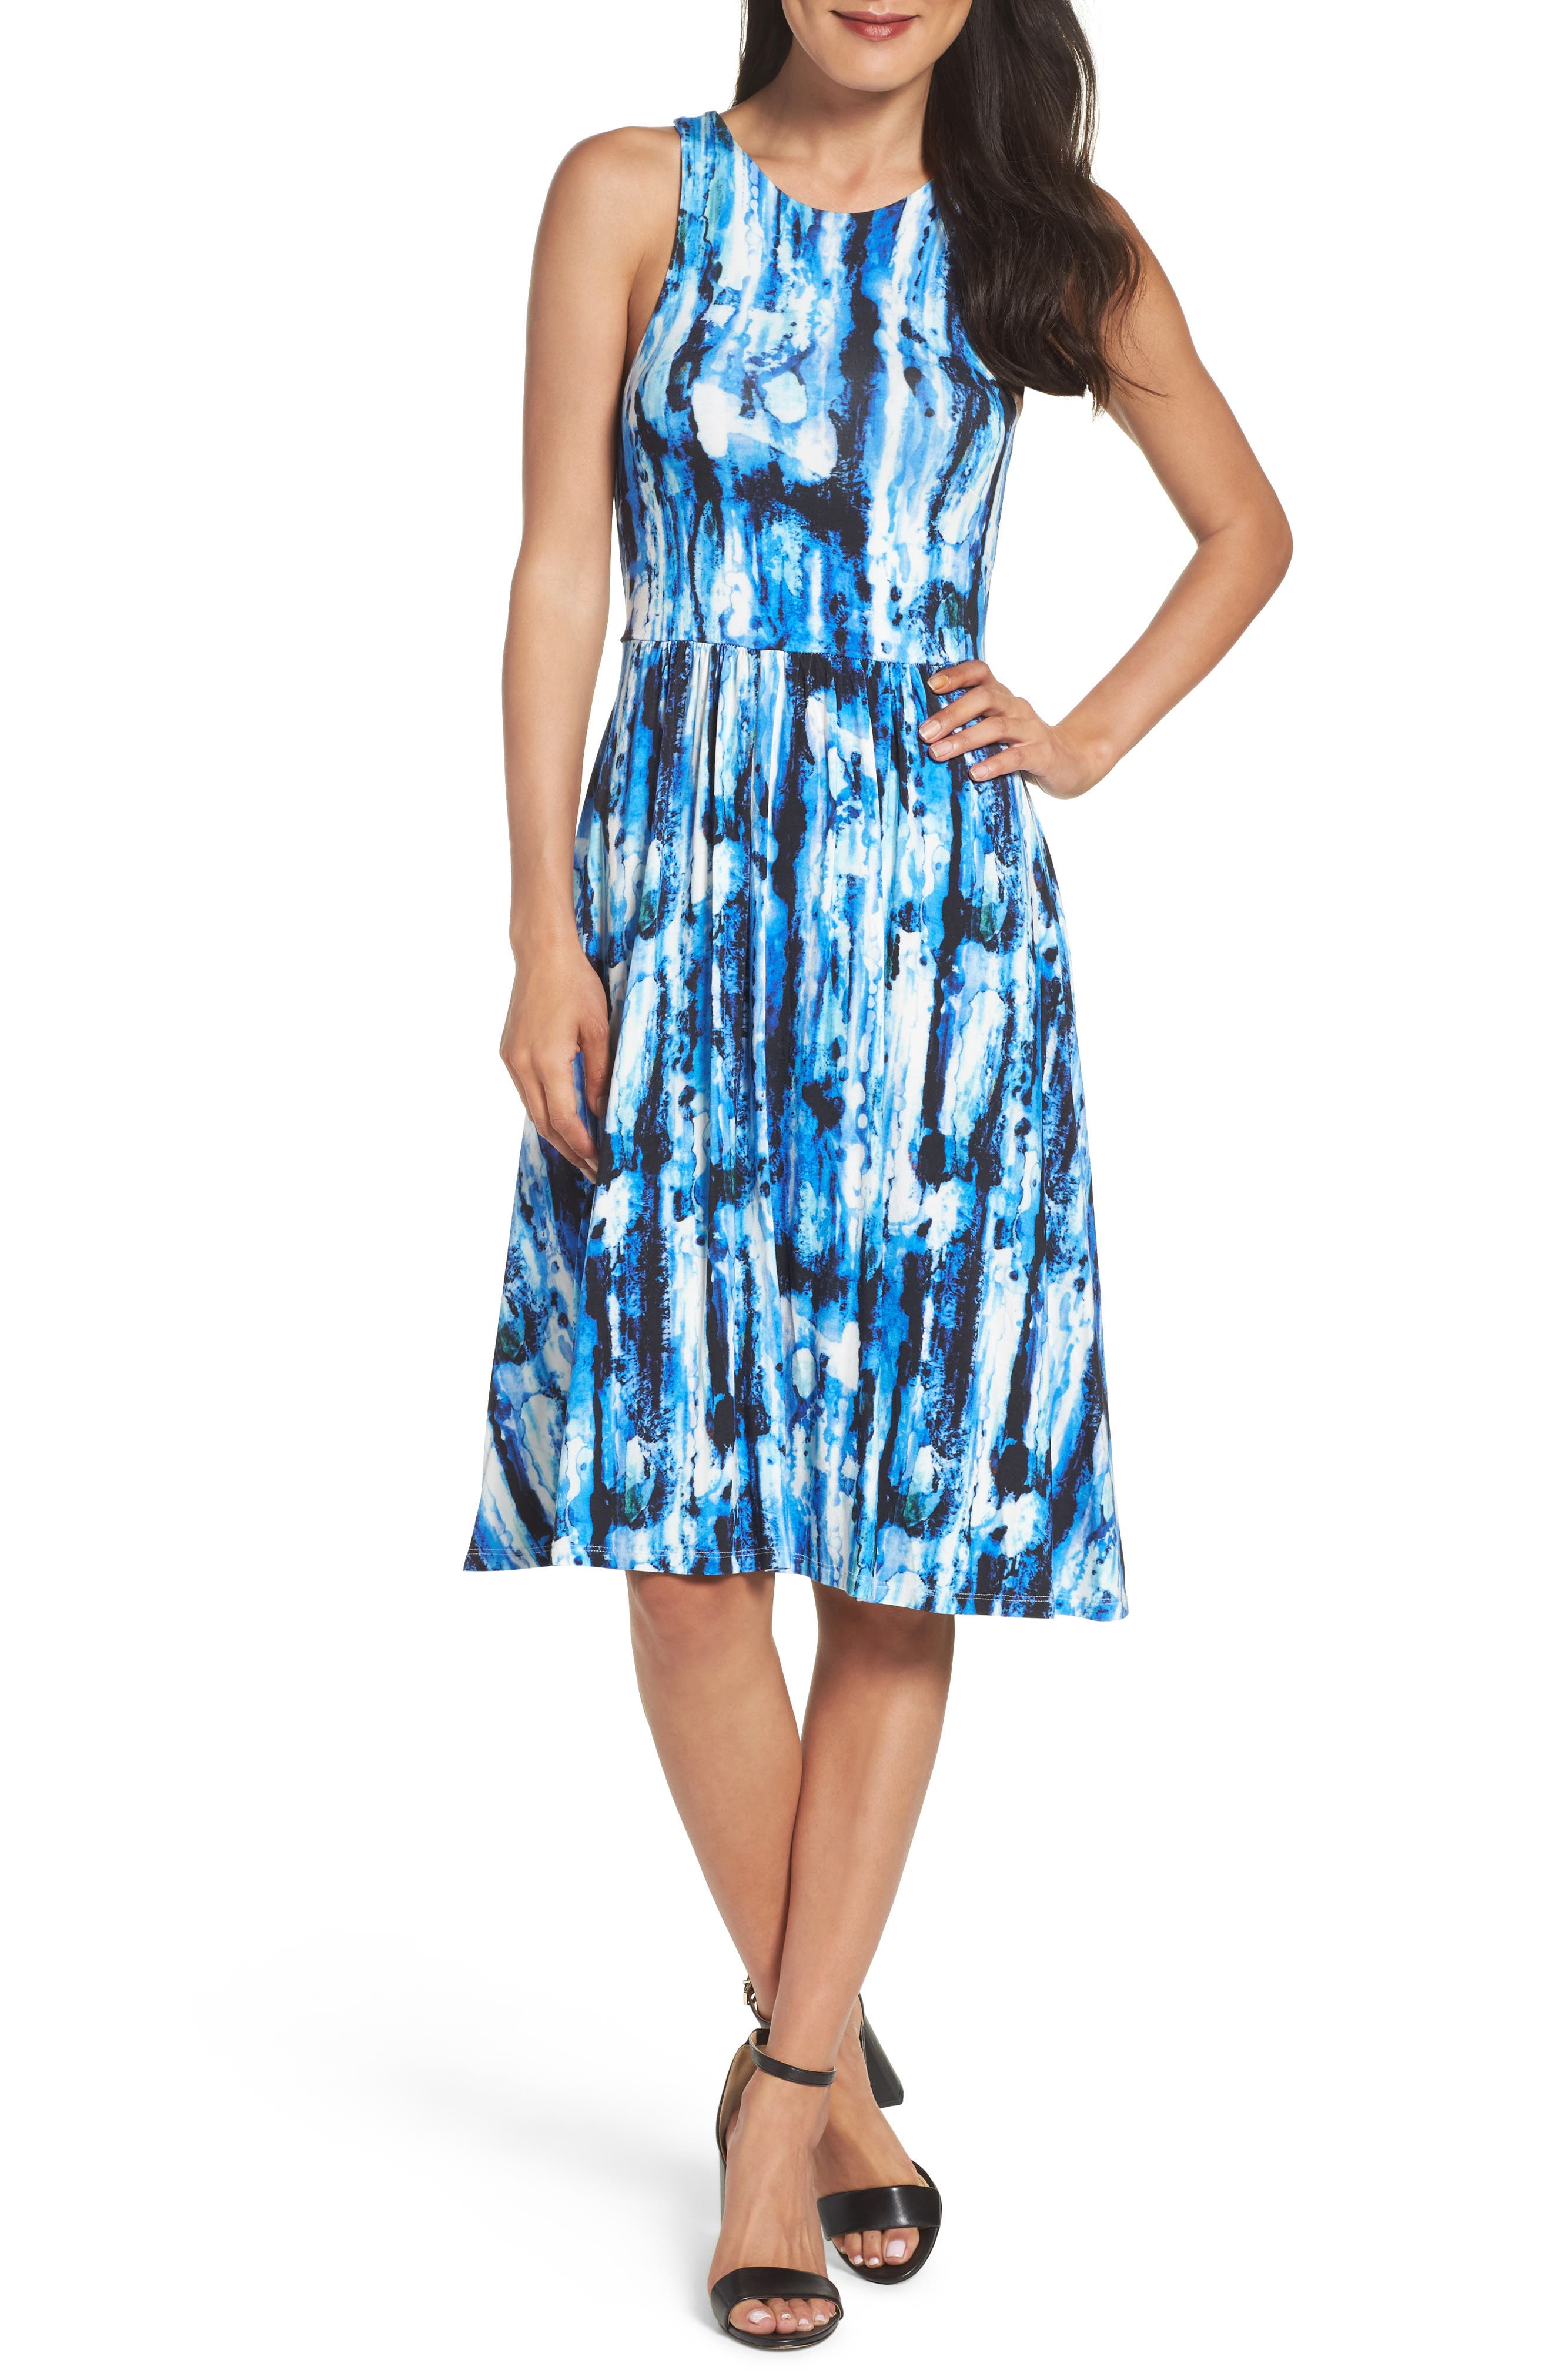 Alternate Image 1 Selected - Felicity & Coco Print Fit & Flare Dress (Regular & Petite) (Nordstrom Exclusive)